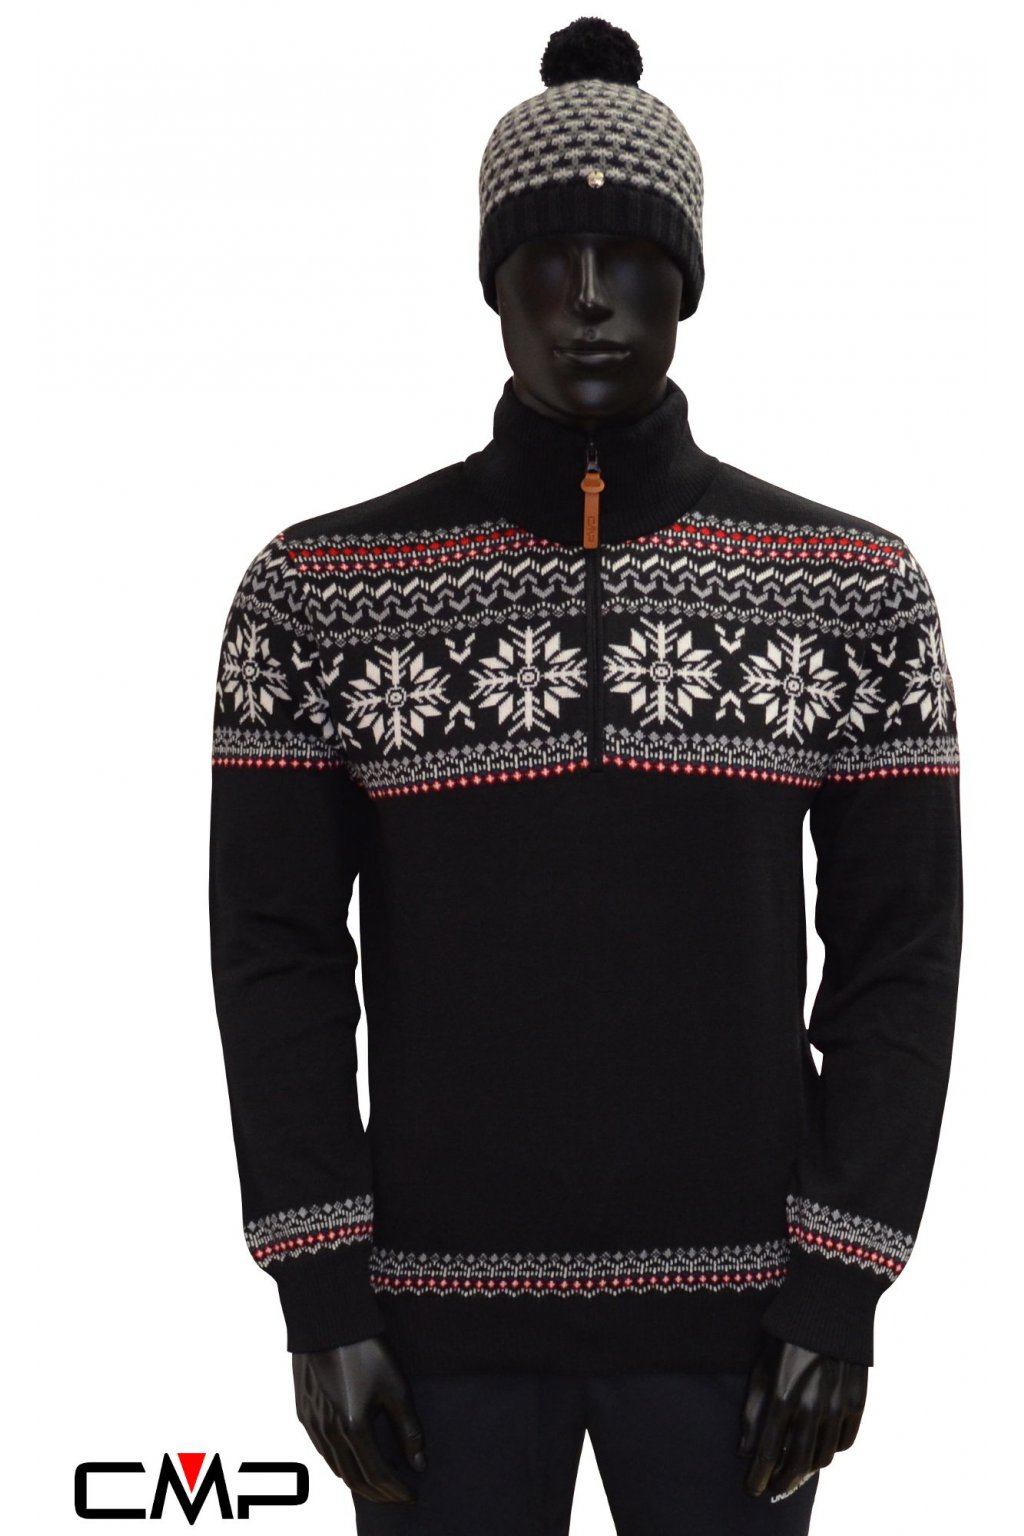 7h17921 pansky pulover cmp man knitted pullover black